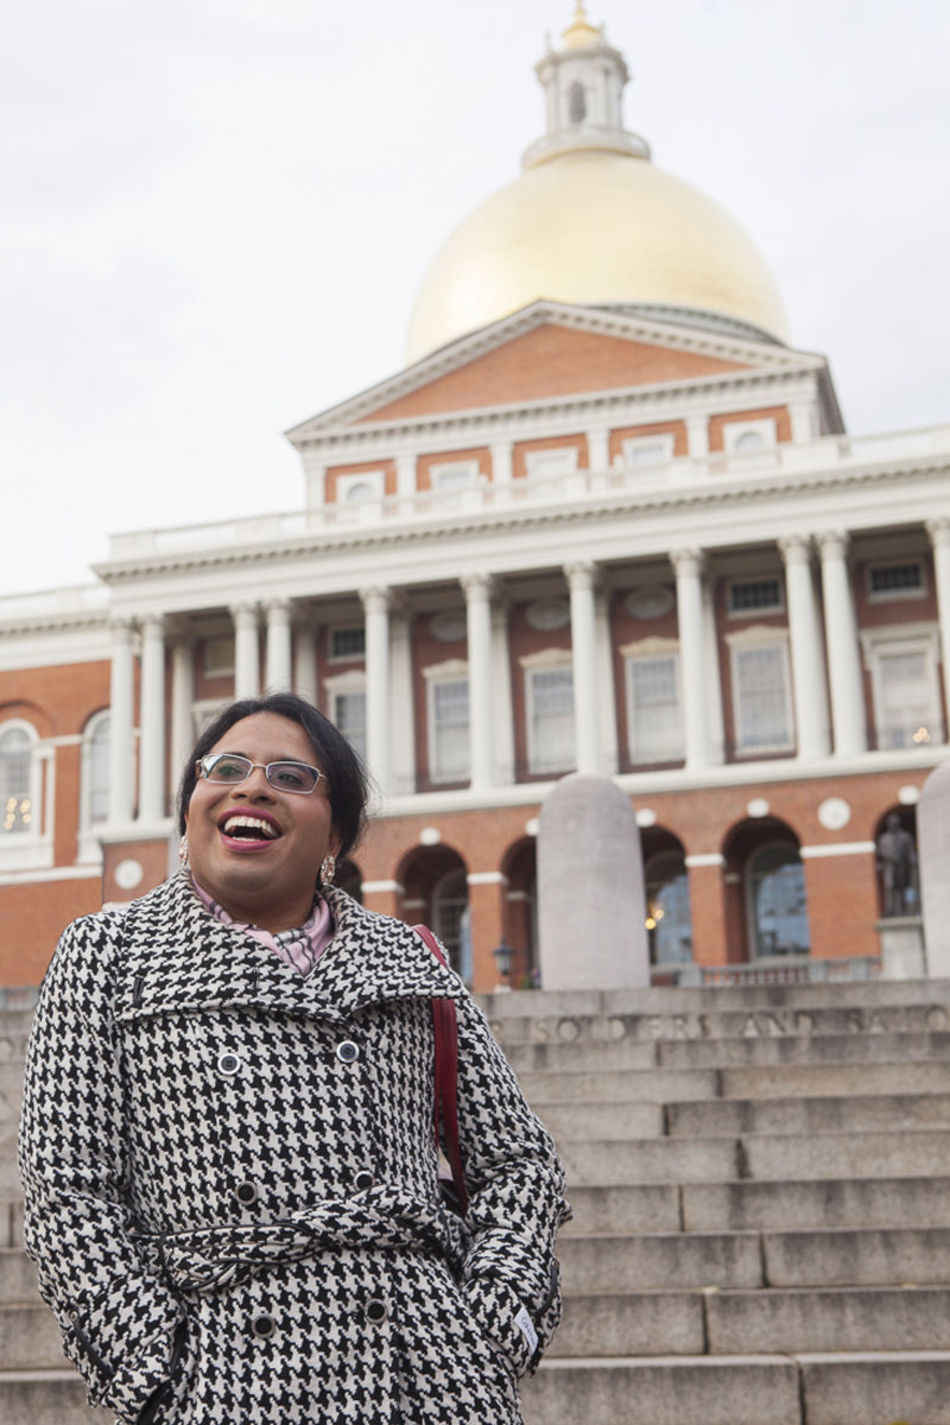 Raffi Freedman-Gurspan - First transgender person to work in the White House